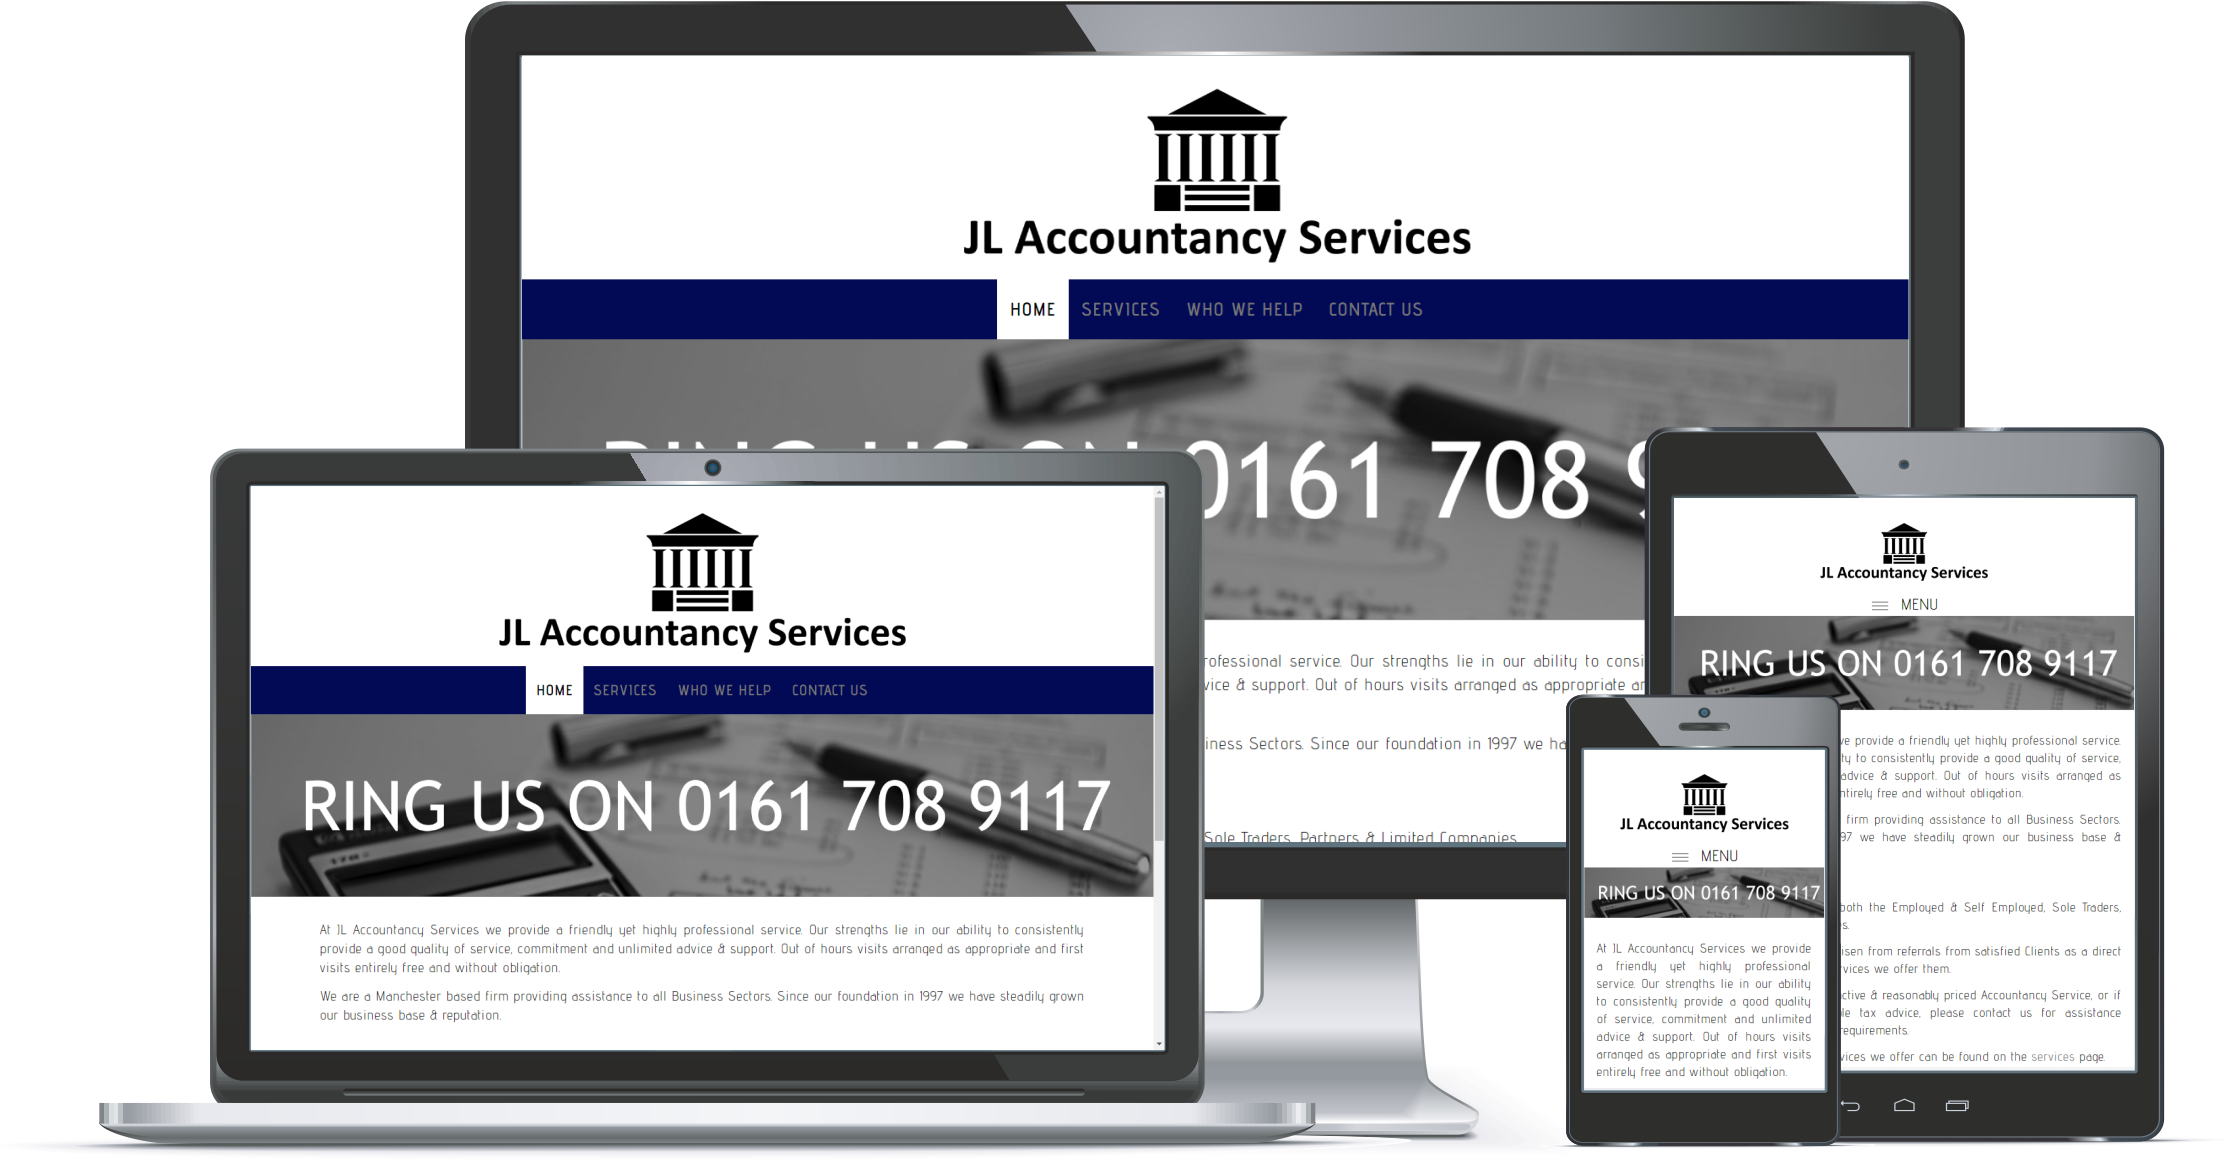 First Contact Website Portfolio - JL Accountancy Services